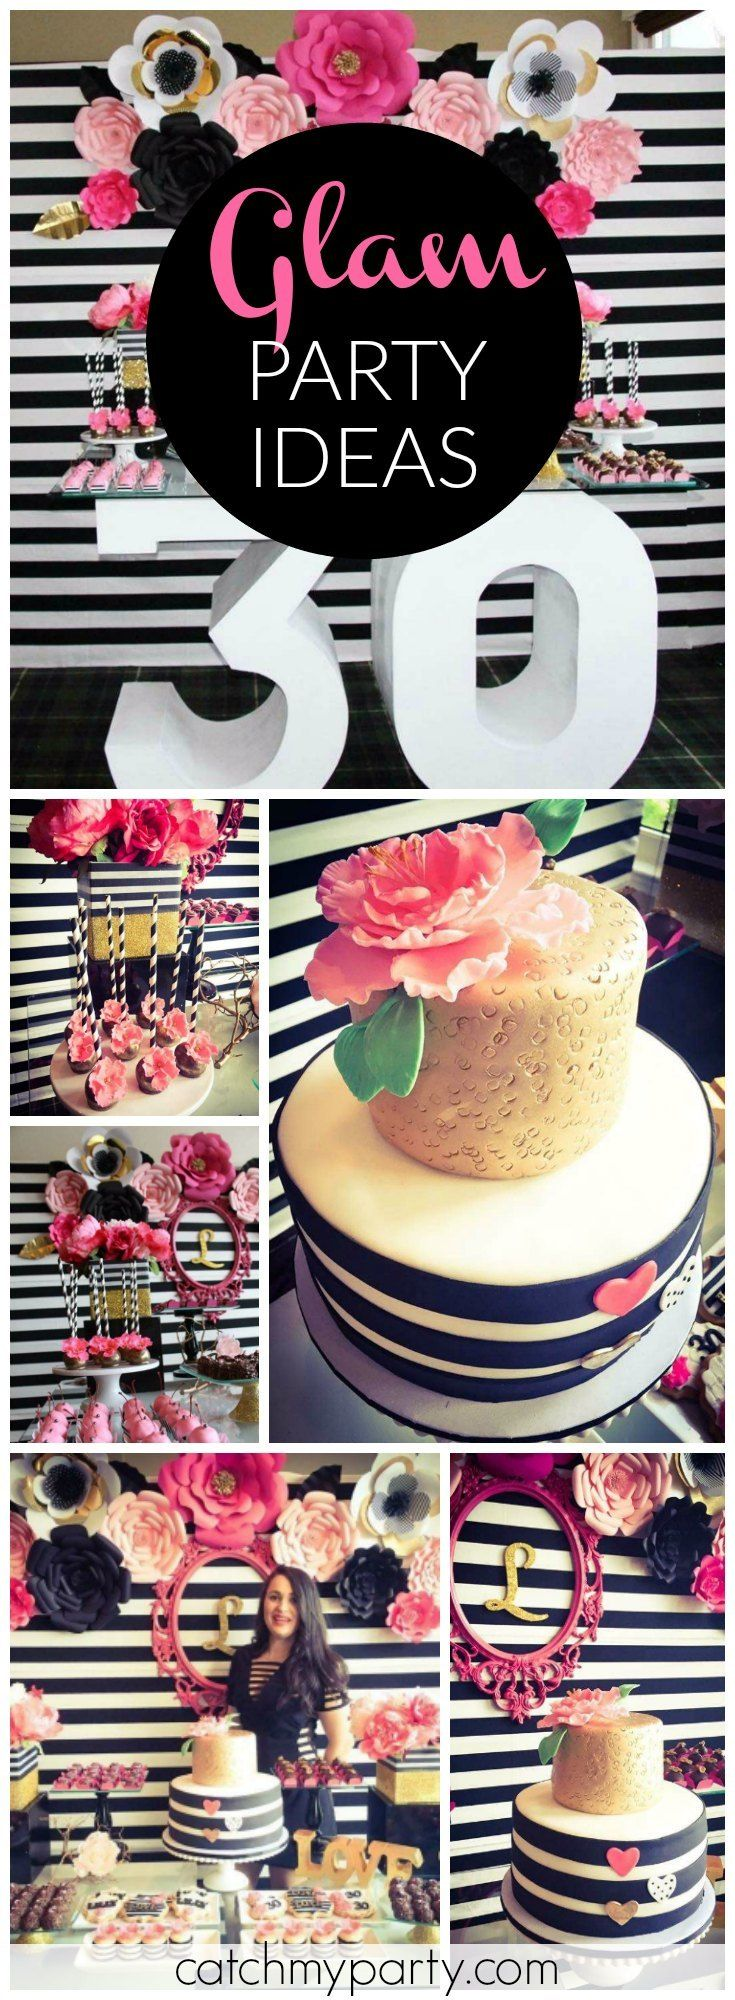 140 Best Kate Spade Party Ideas Images On Pinterest Birthday